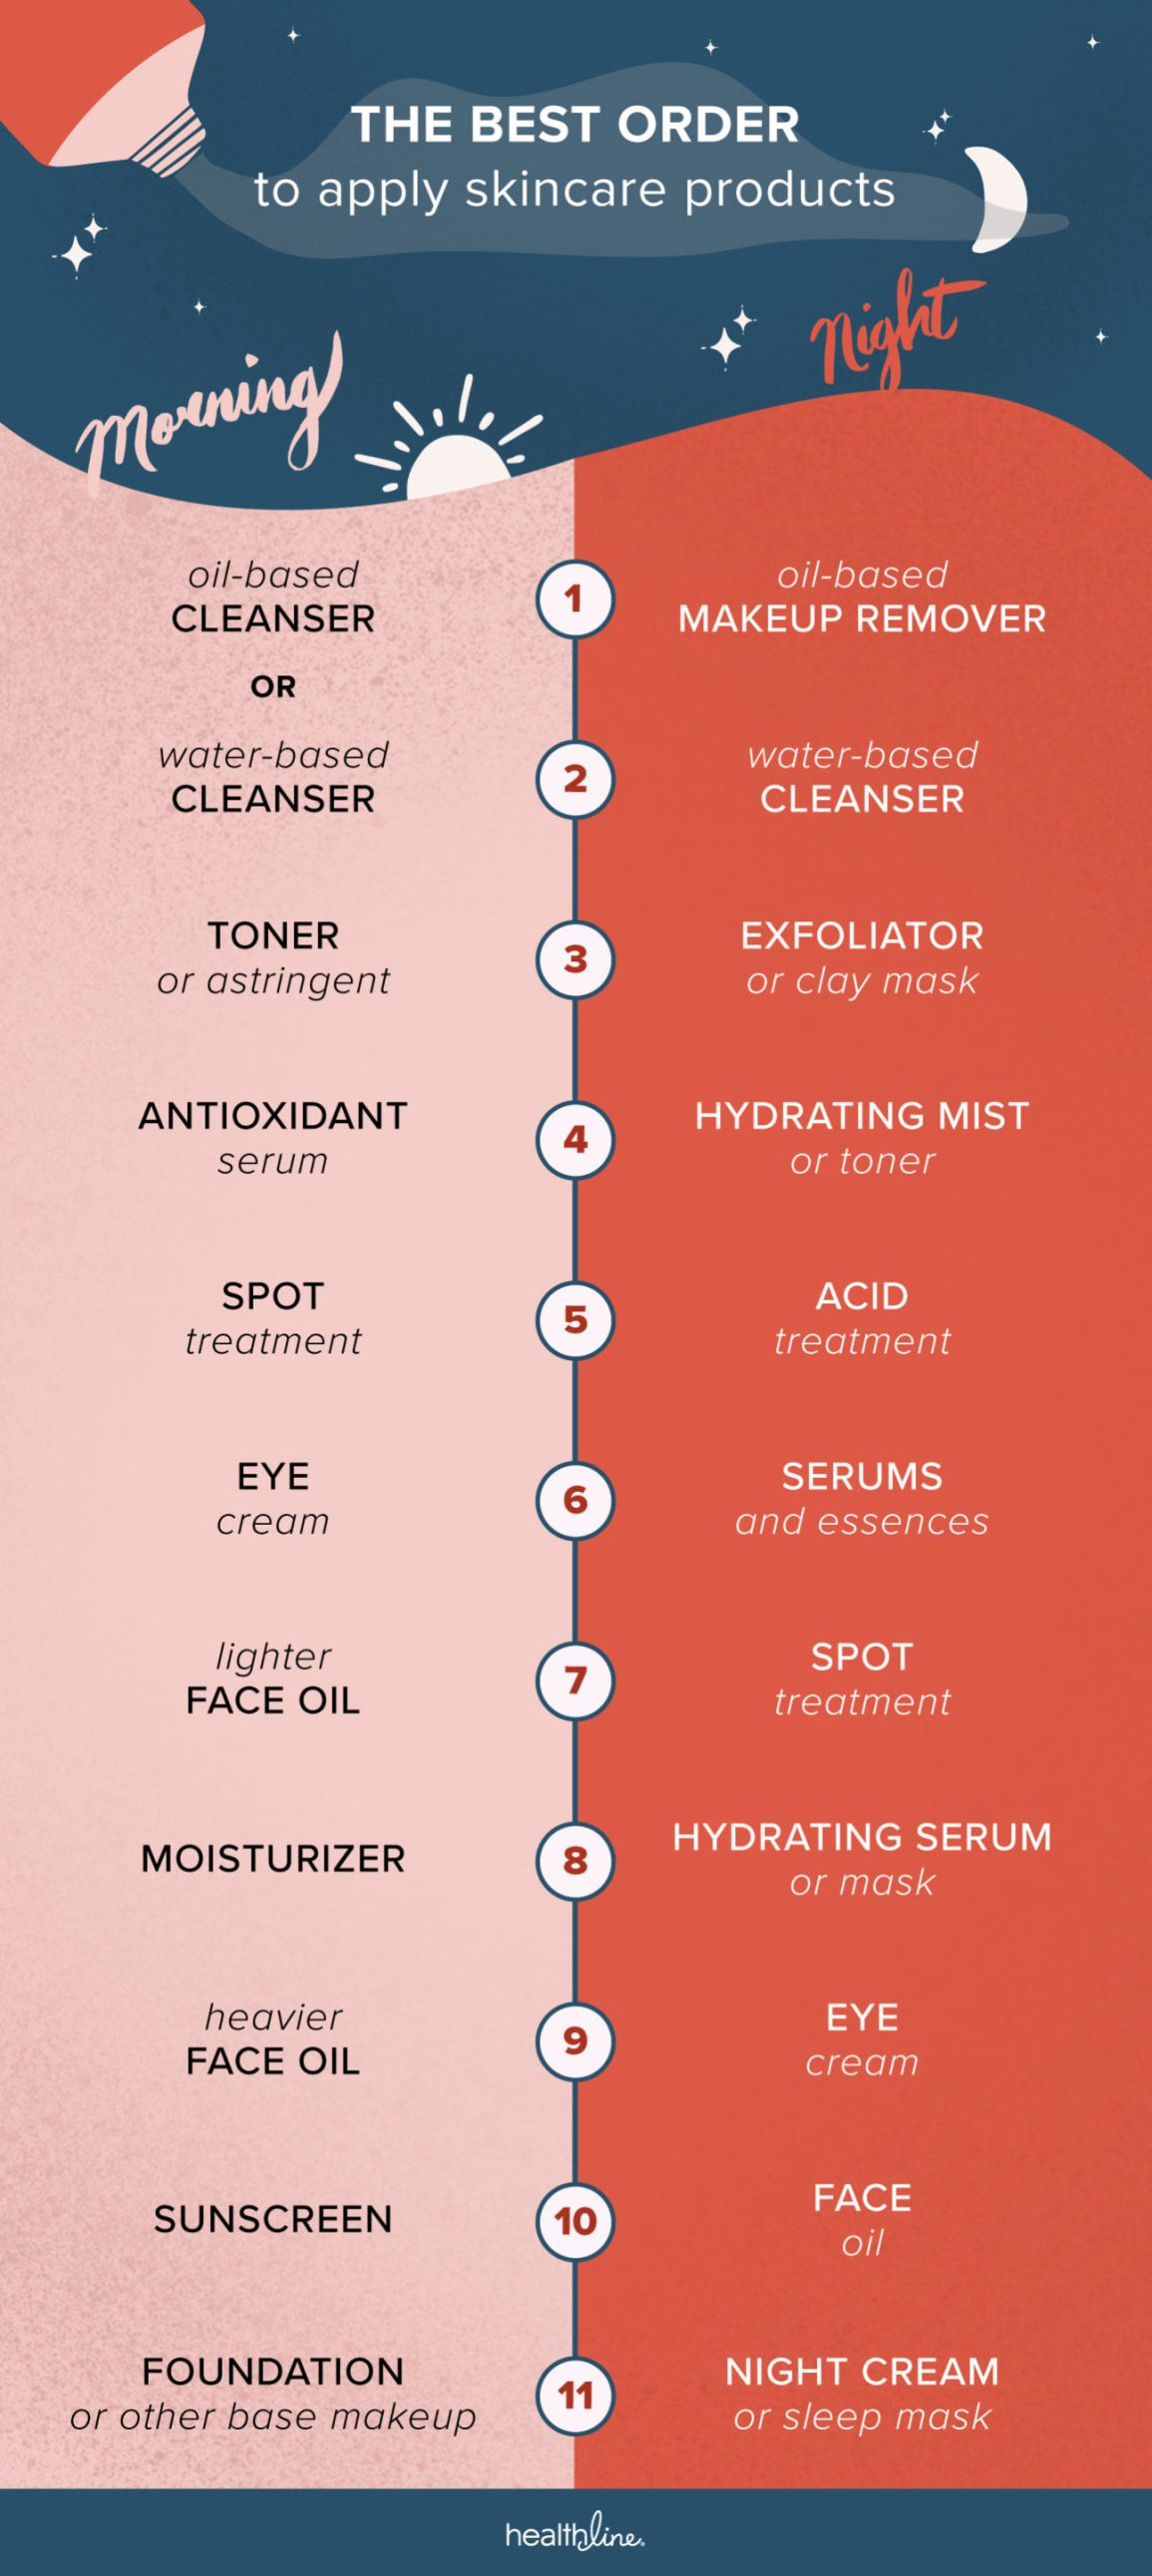 What Order Should I Follow When Applying Skin Care Products?